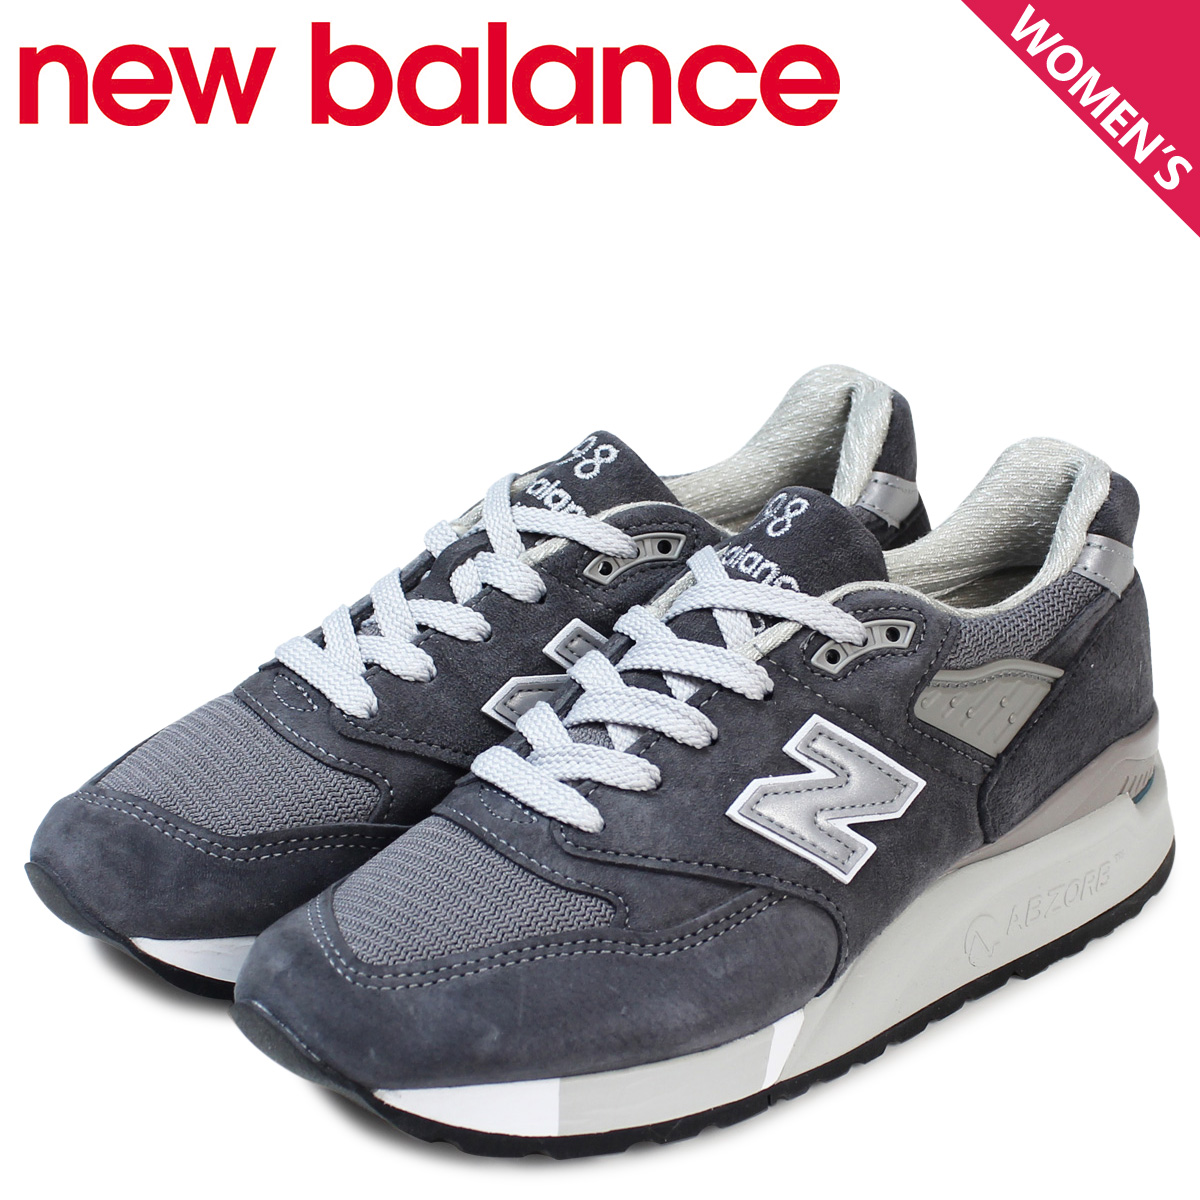 New balance 998 women's sneakers new balance USA W998CH B y shoes blue [11  / 7 new in stock]